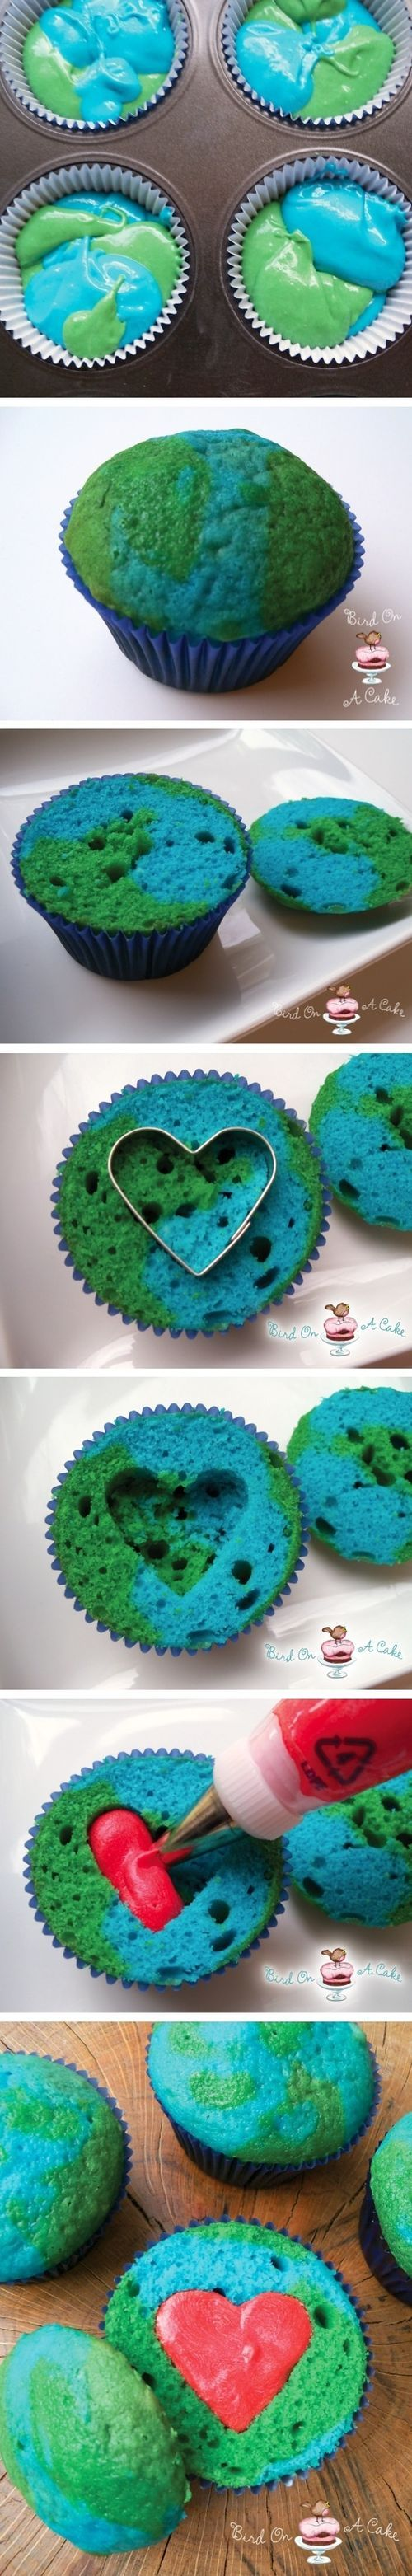 I'm making these for Earth Day!! How cute <3